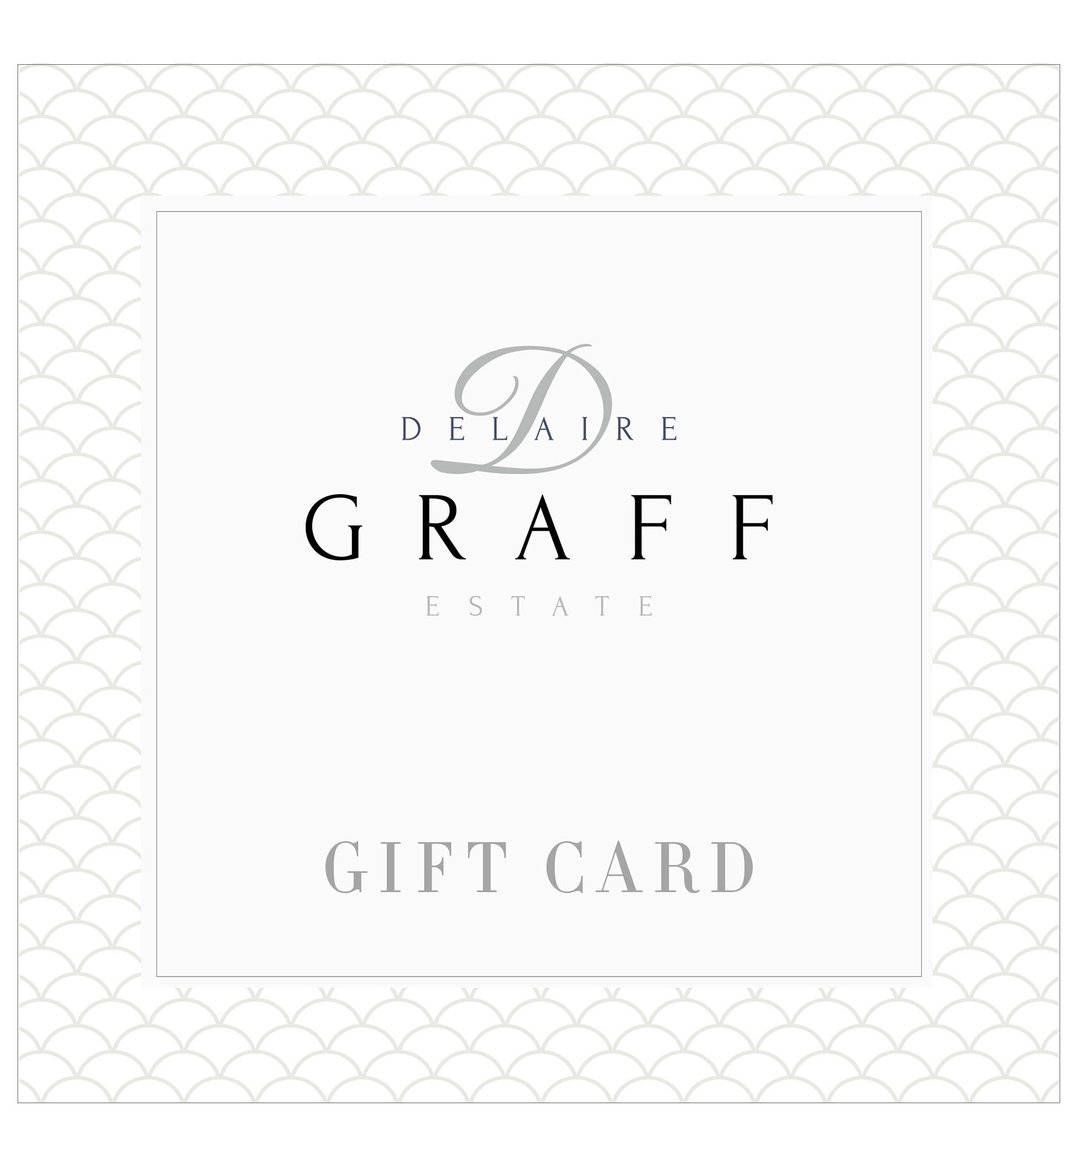 A Delaire Graff Estate gift card